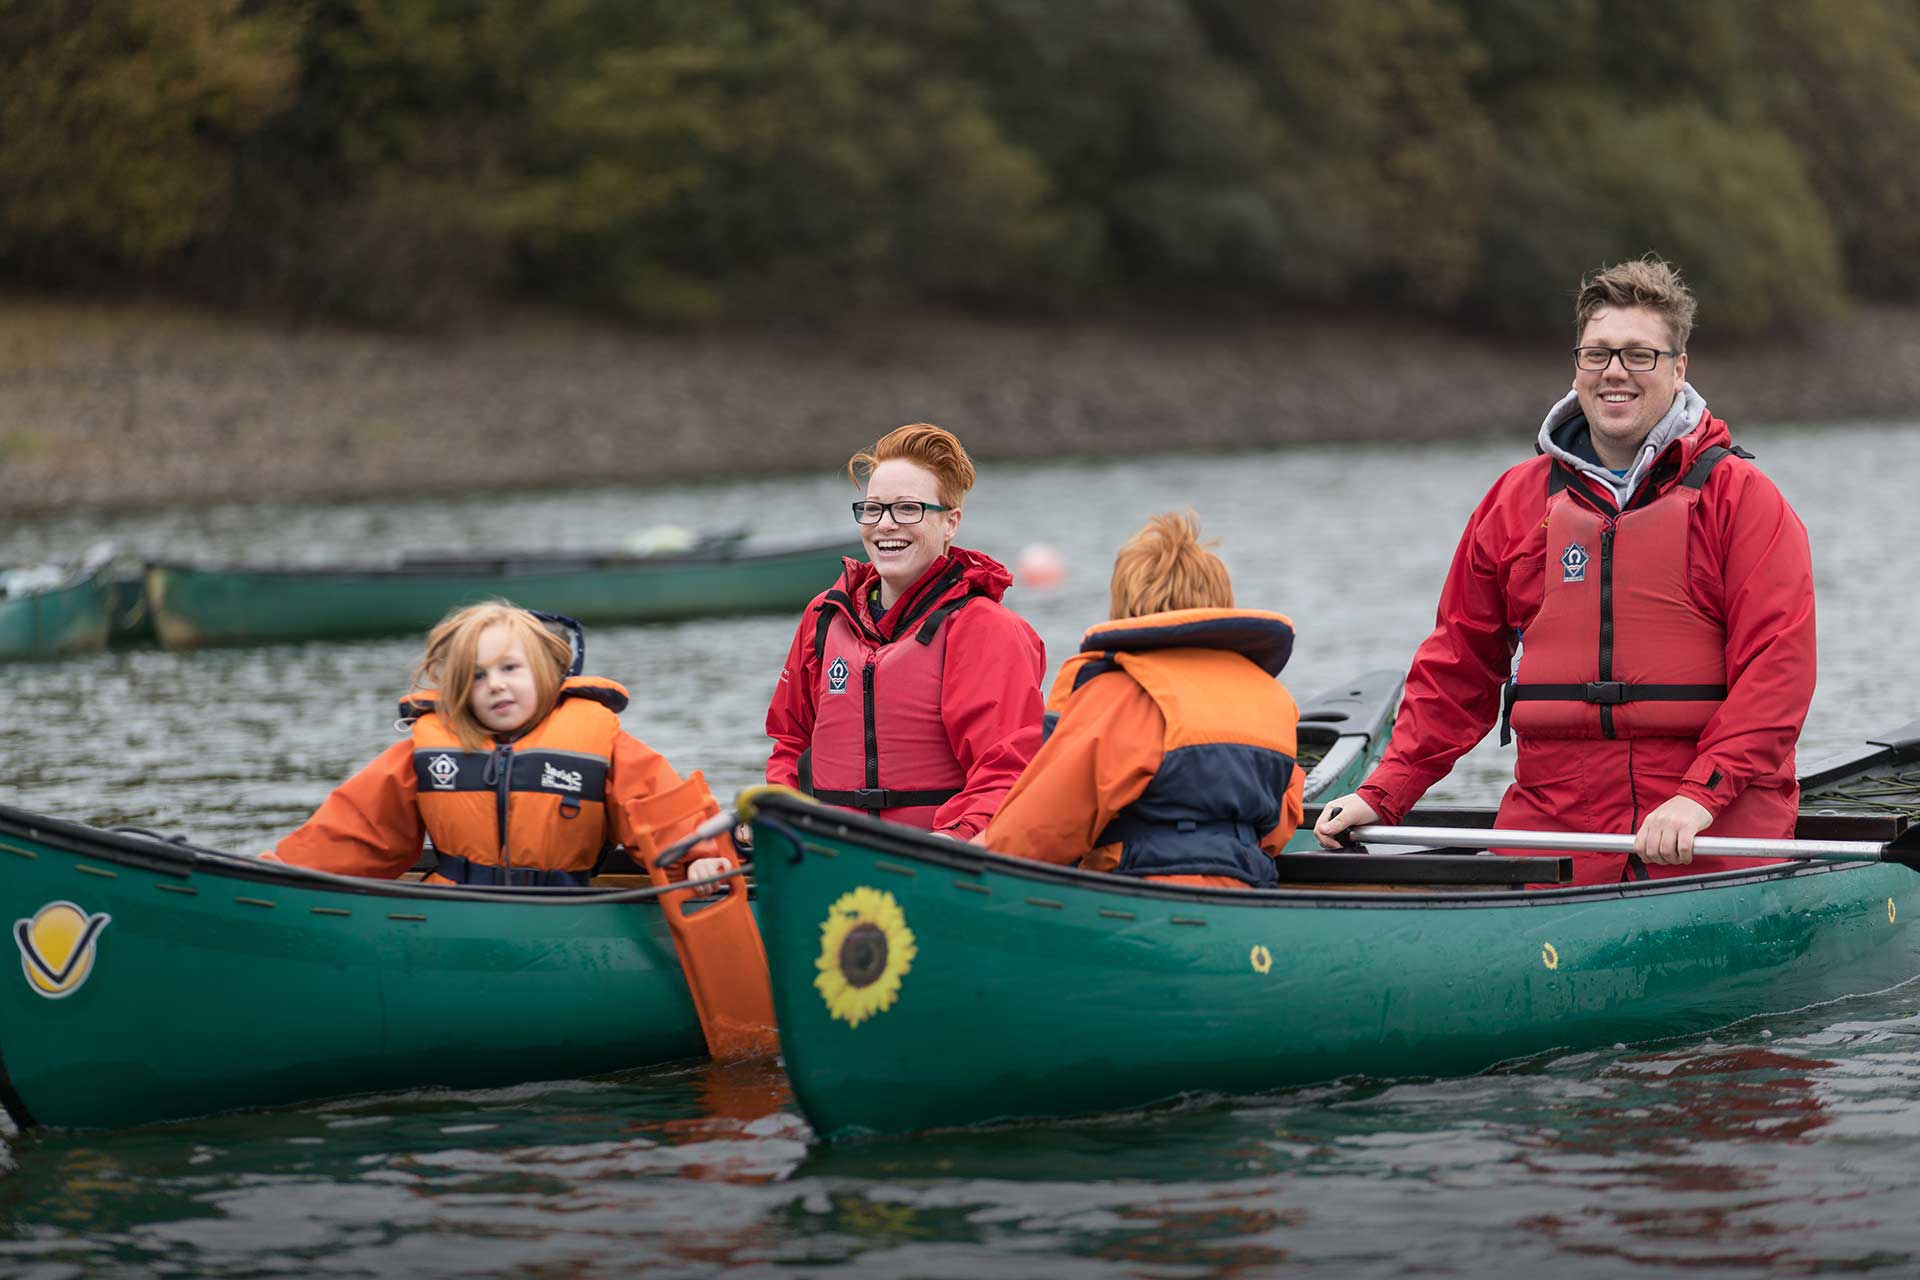 Young family of four wearing life jackets in rafted canoes on the water at Calvert Trust Exmoor, with paddles